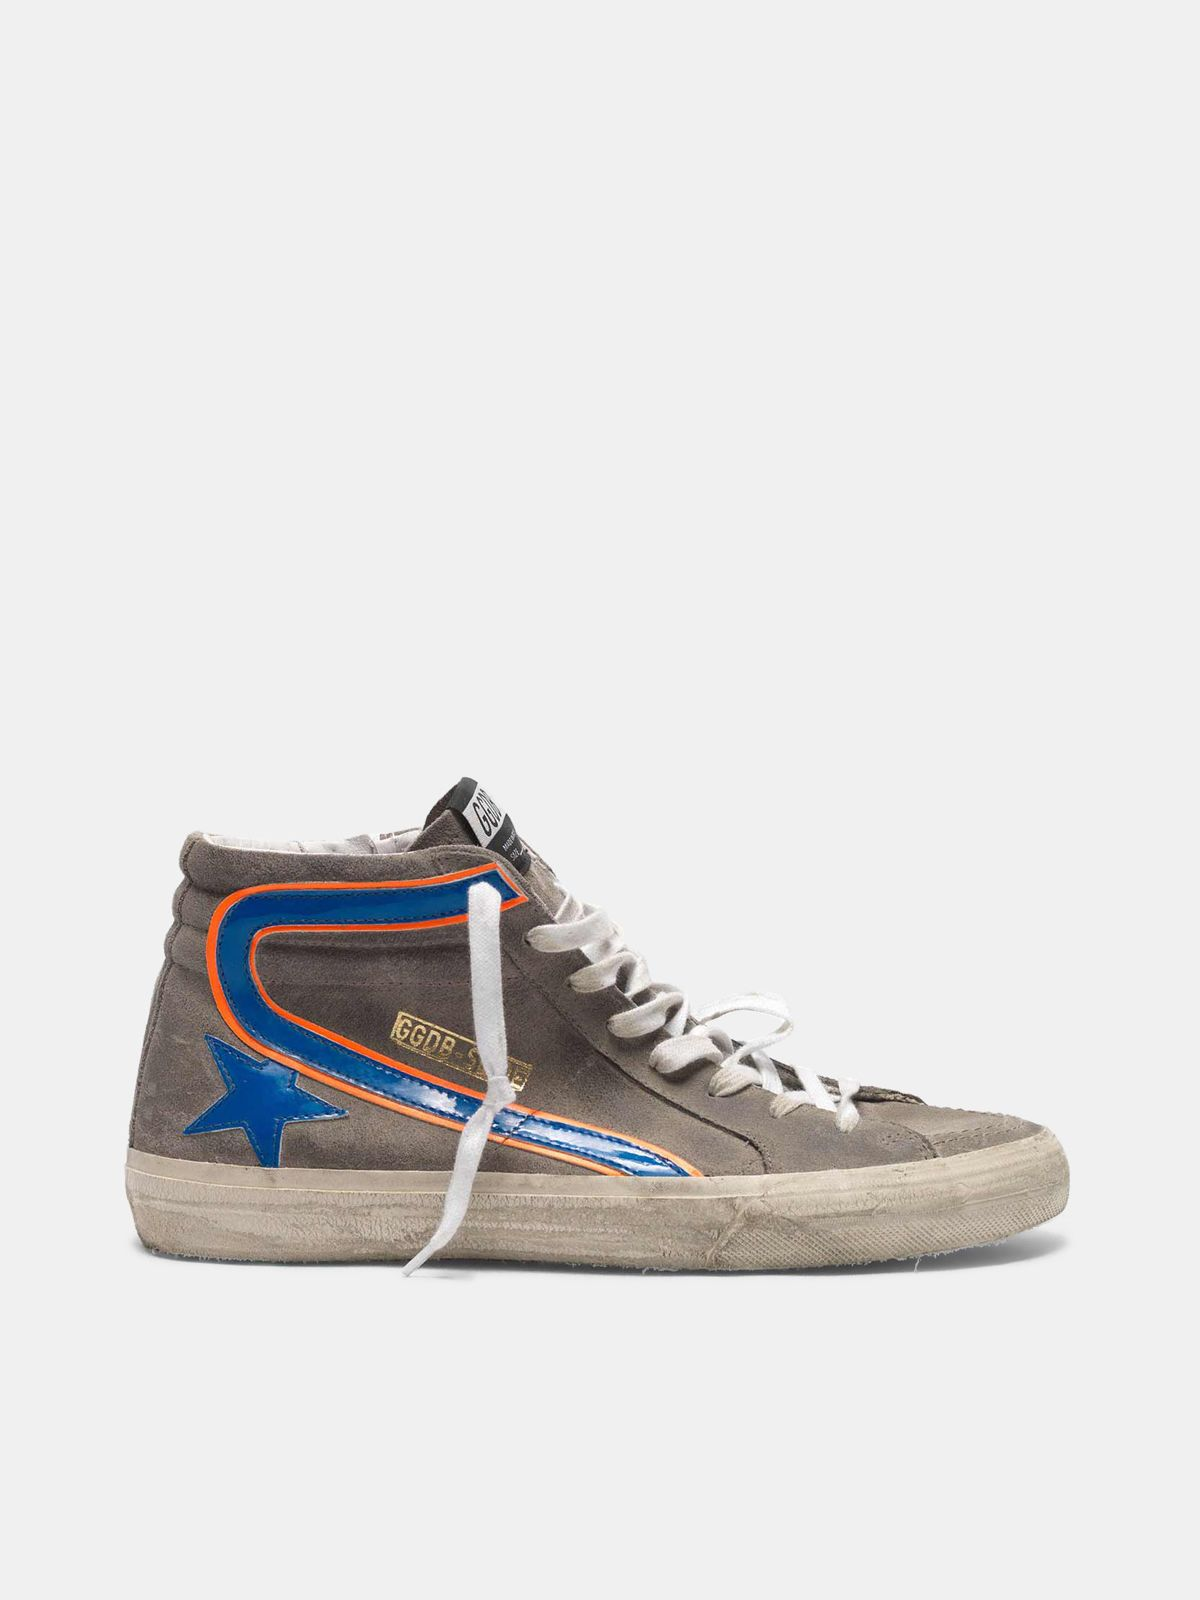 Golden Goose - Grey Slide sneakers in suede with electric blue details in